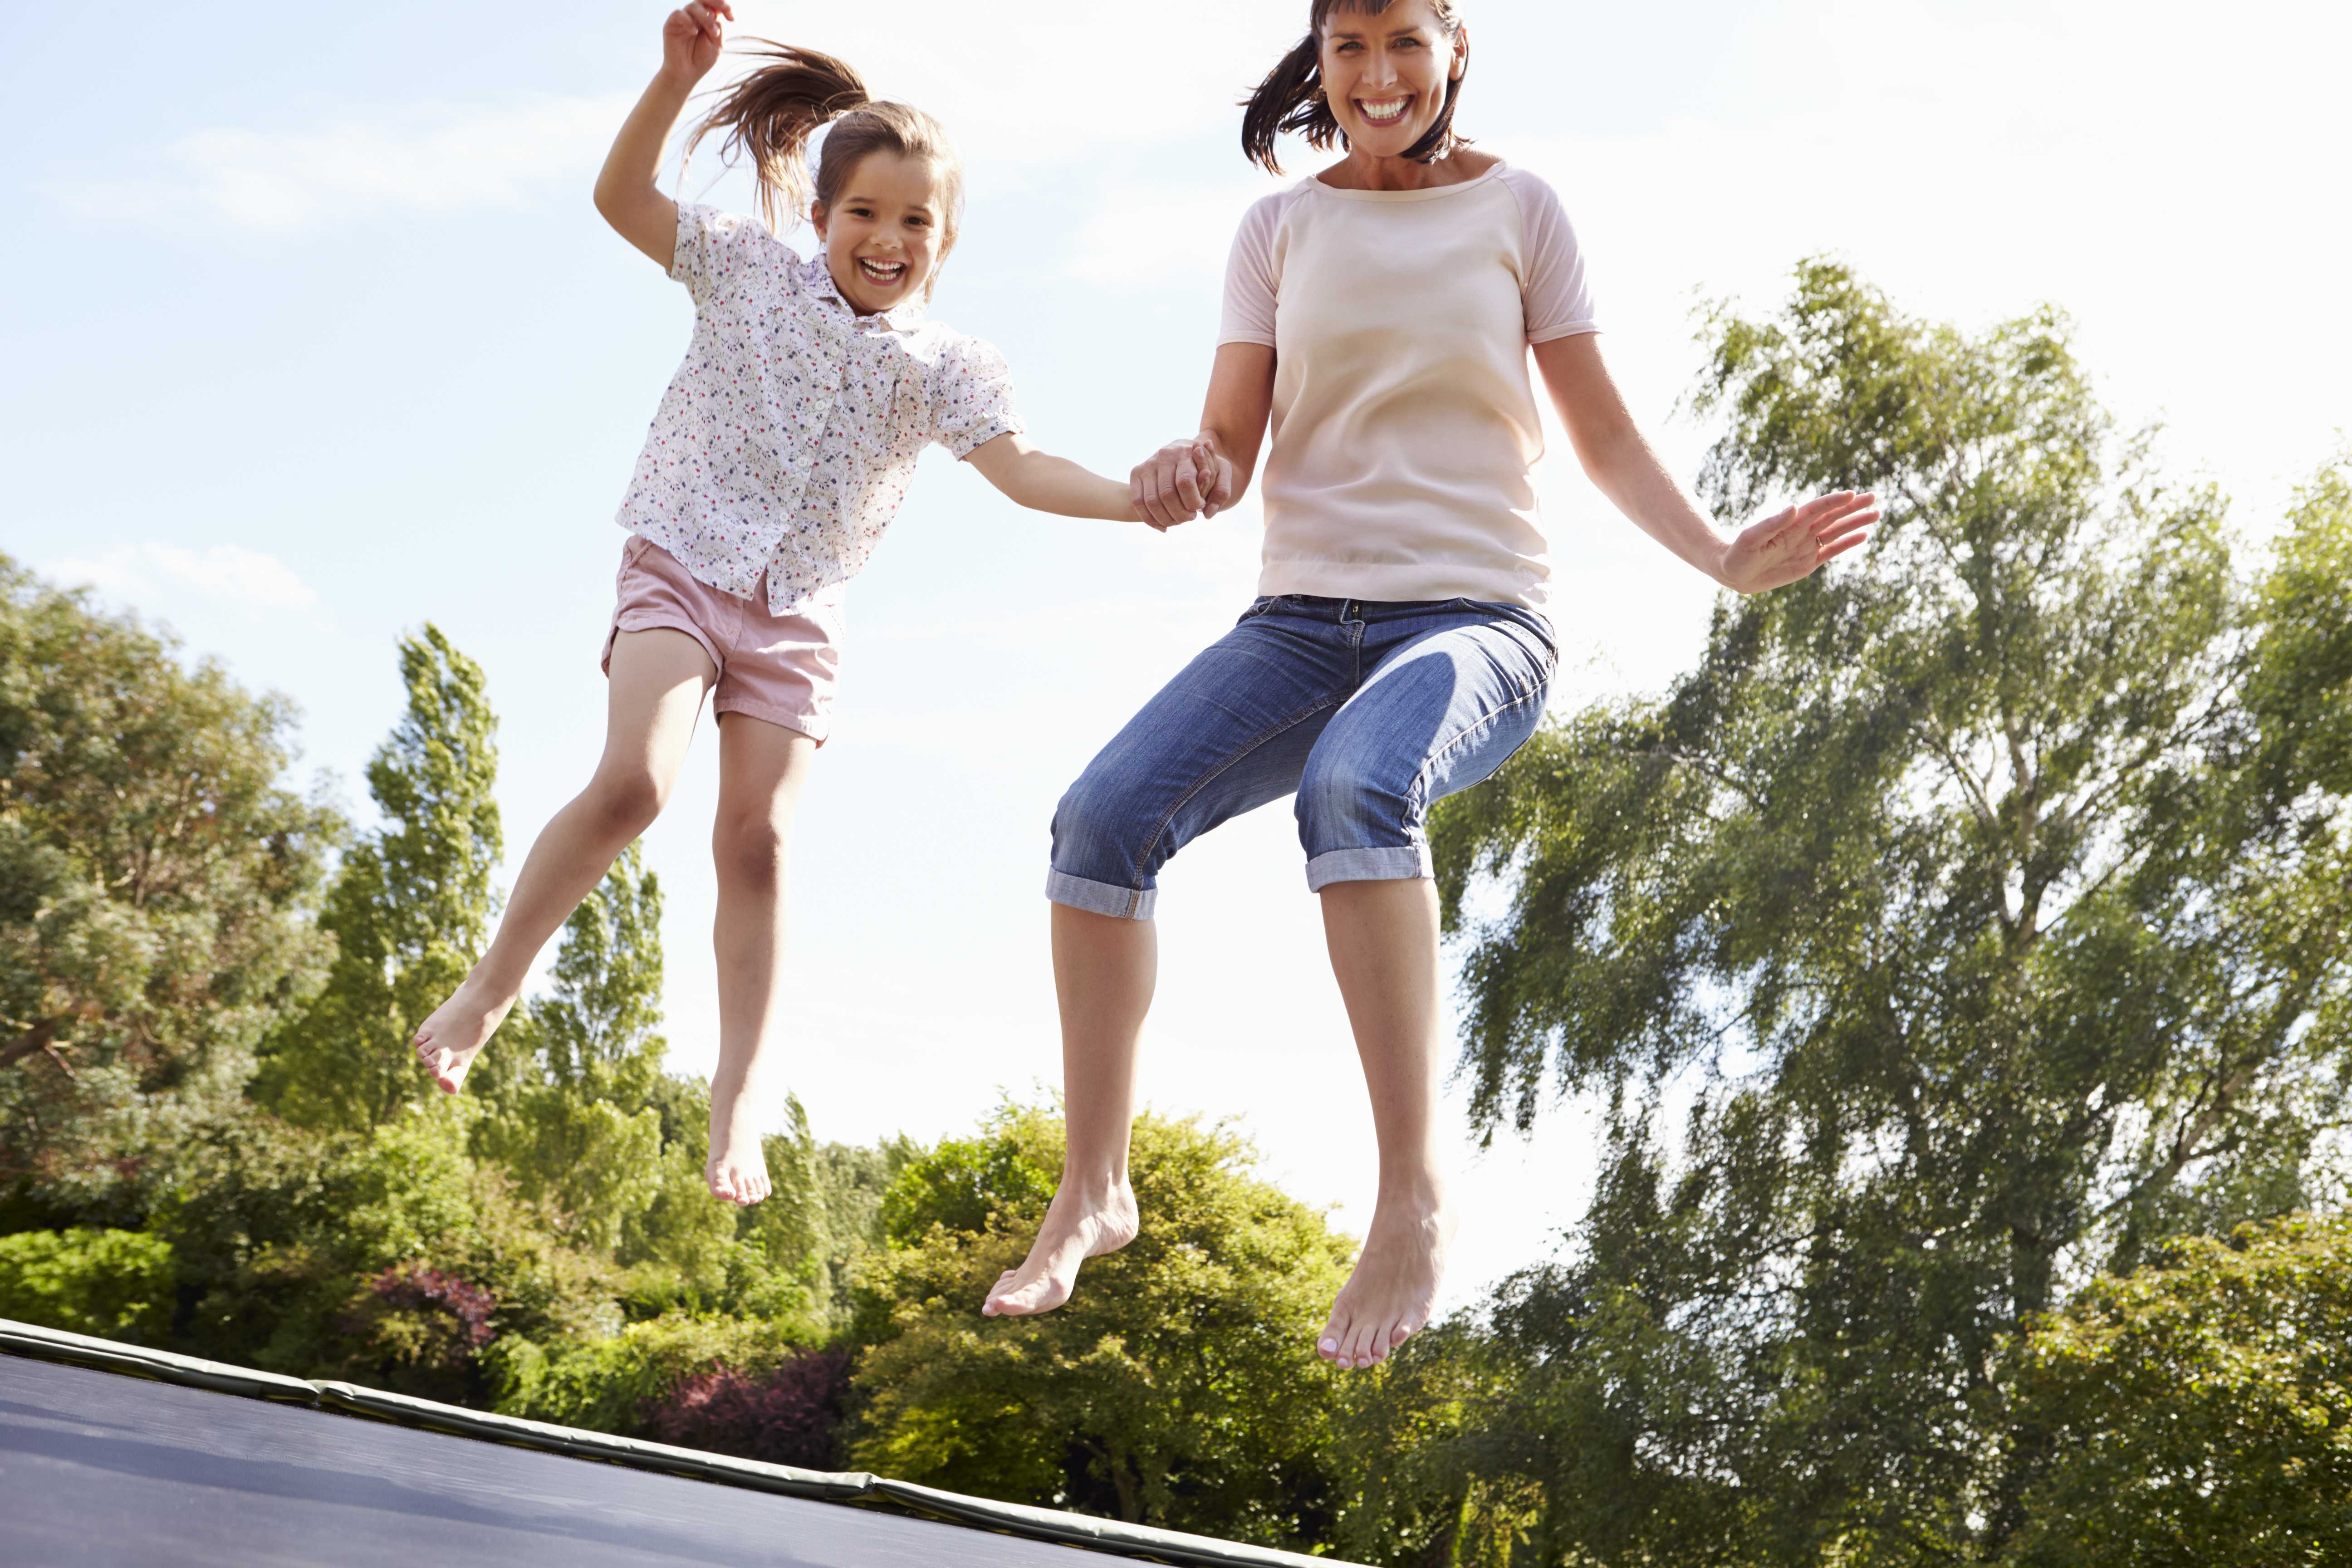 Factors To Consider Before Purchasing a Trampoline